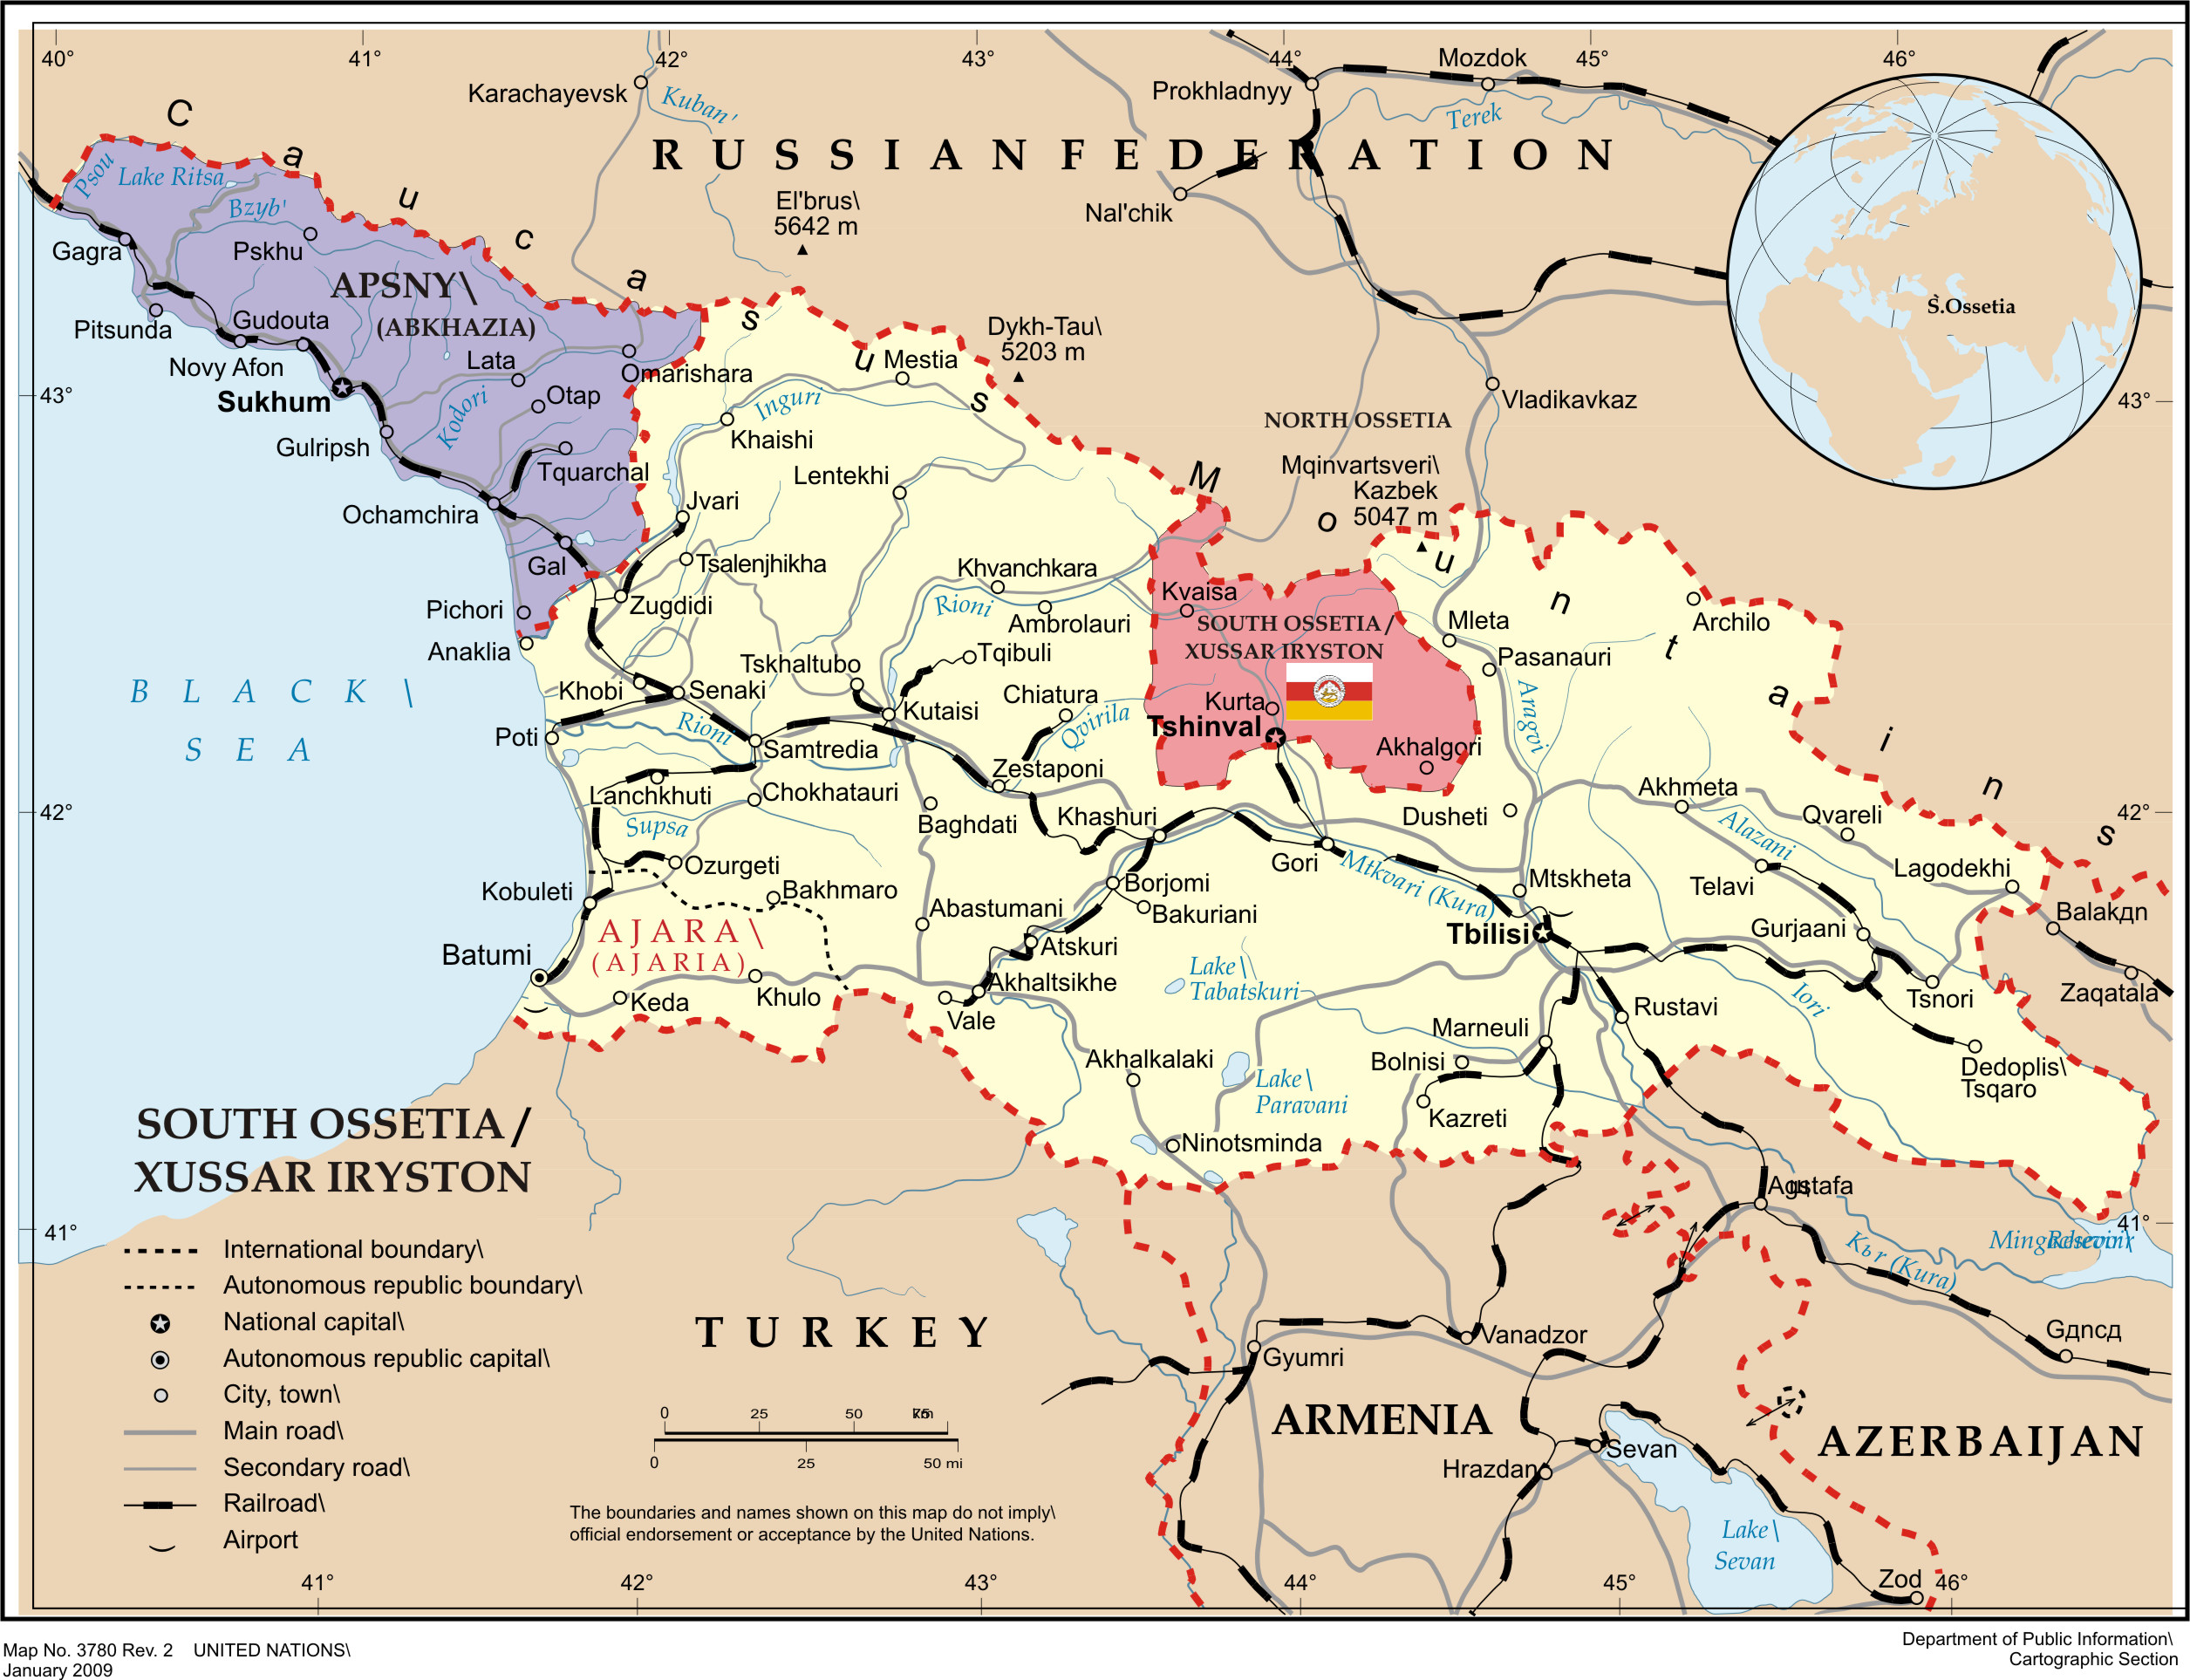 http://dic.academic.ru/pictures/wiki/files/83/S_ossetia_2008.JPG